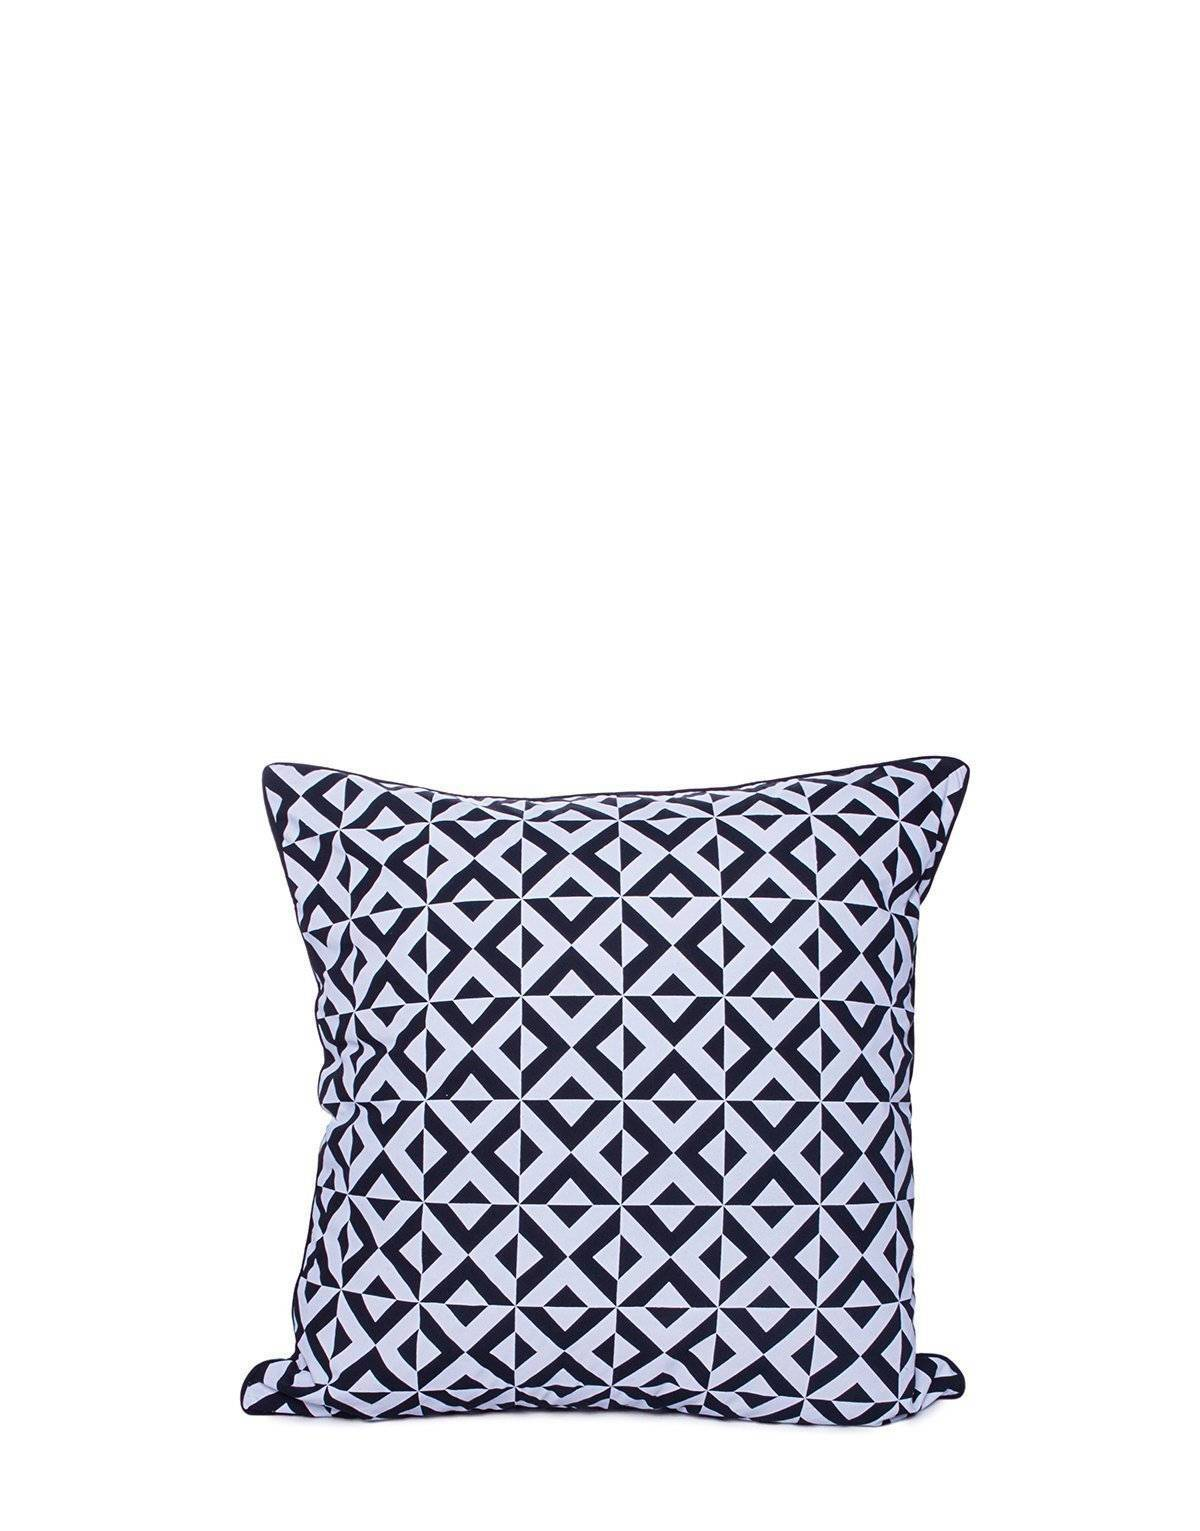 ARKA Living Mercury cushion cover